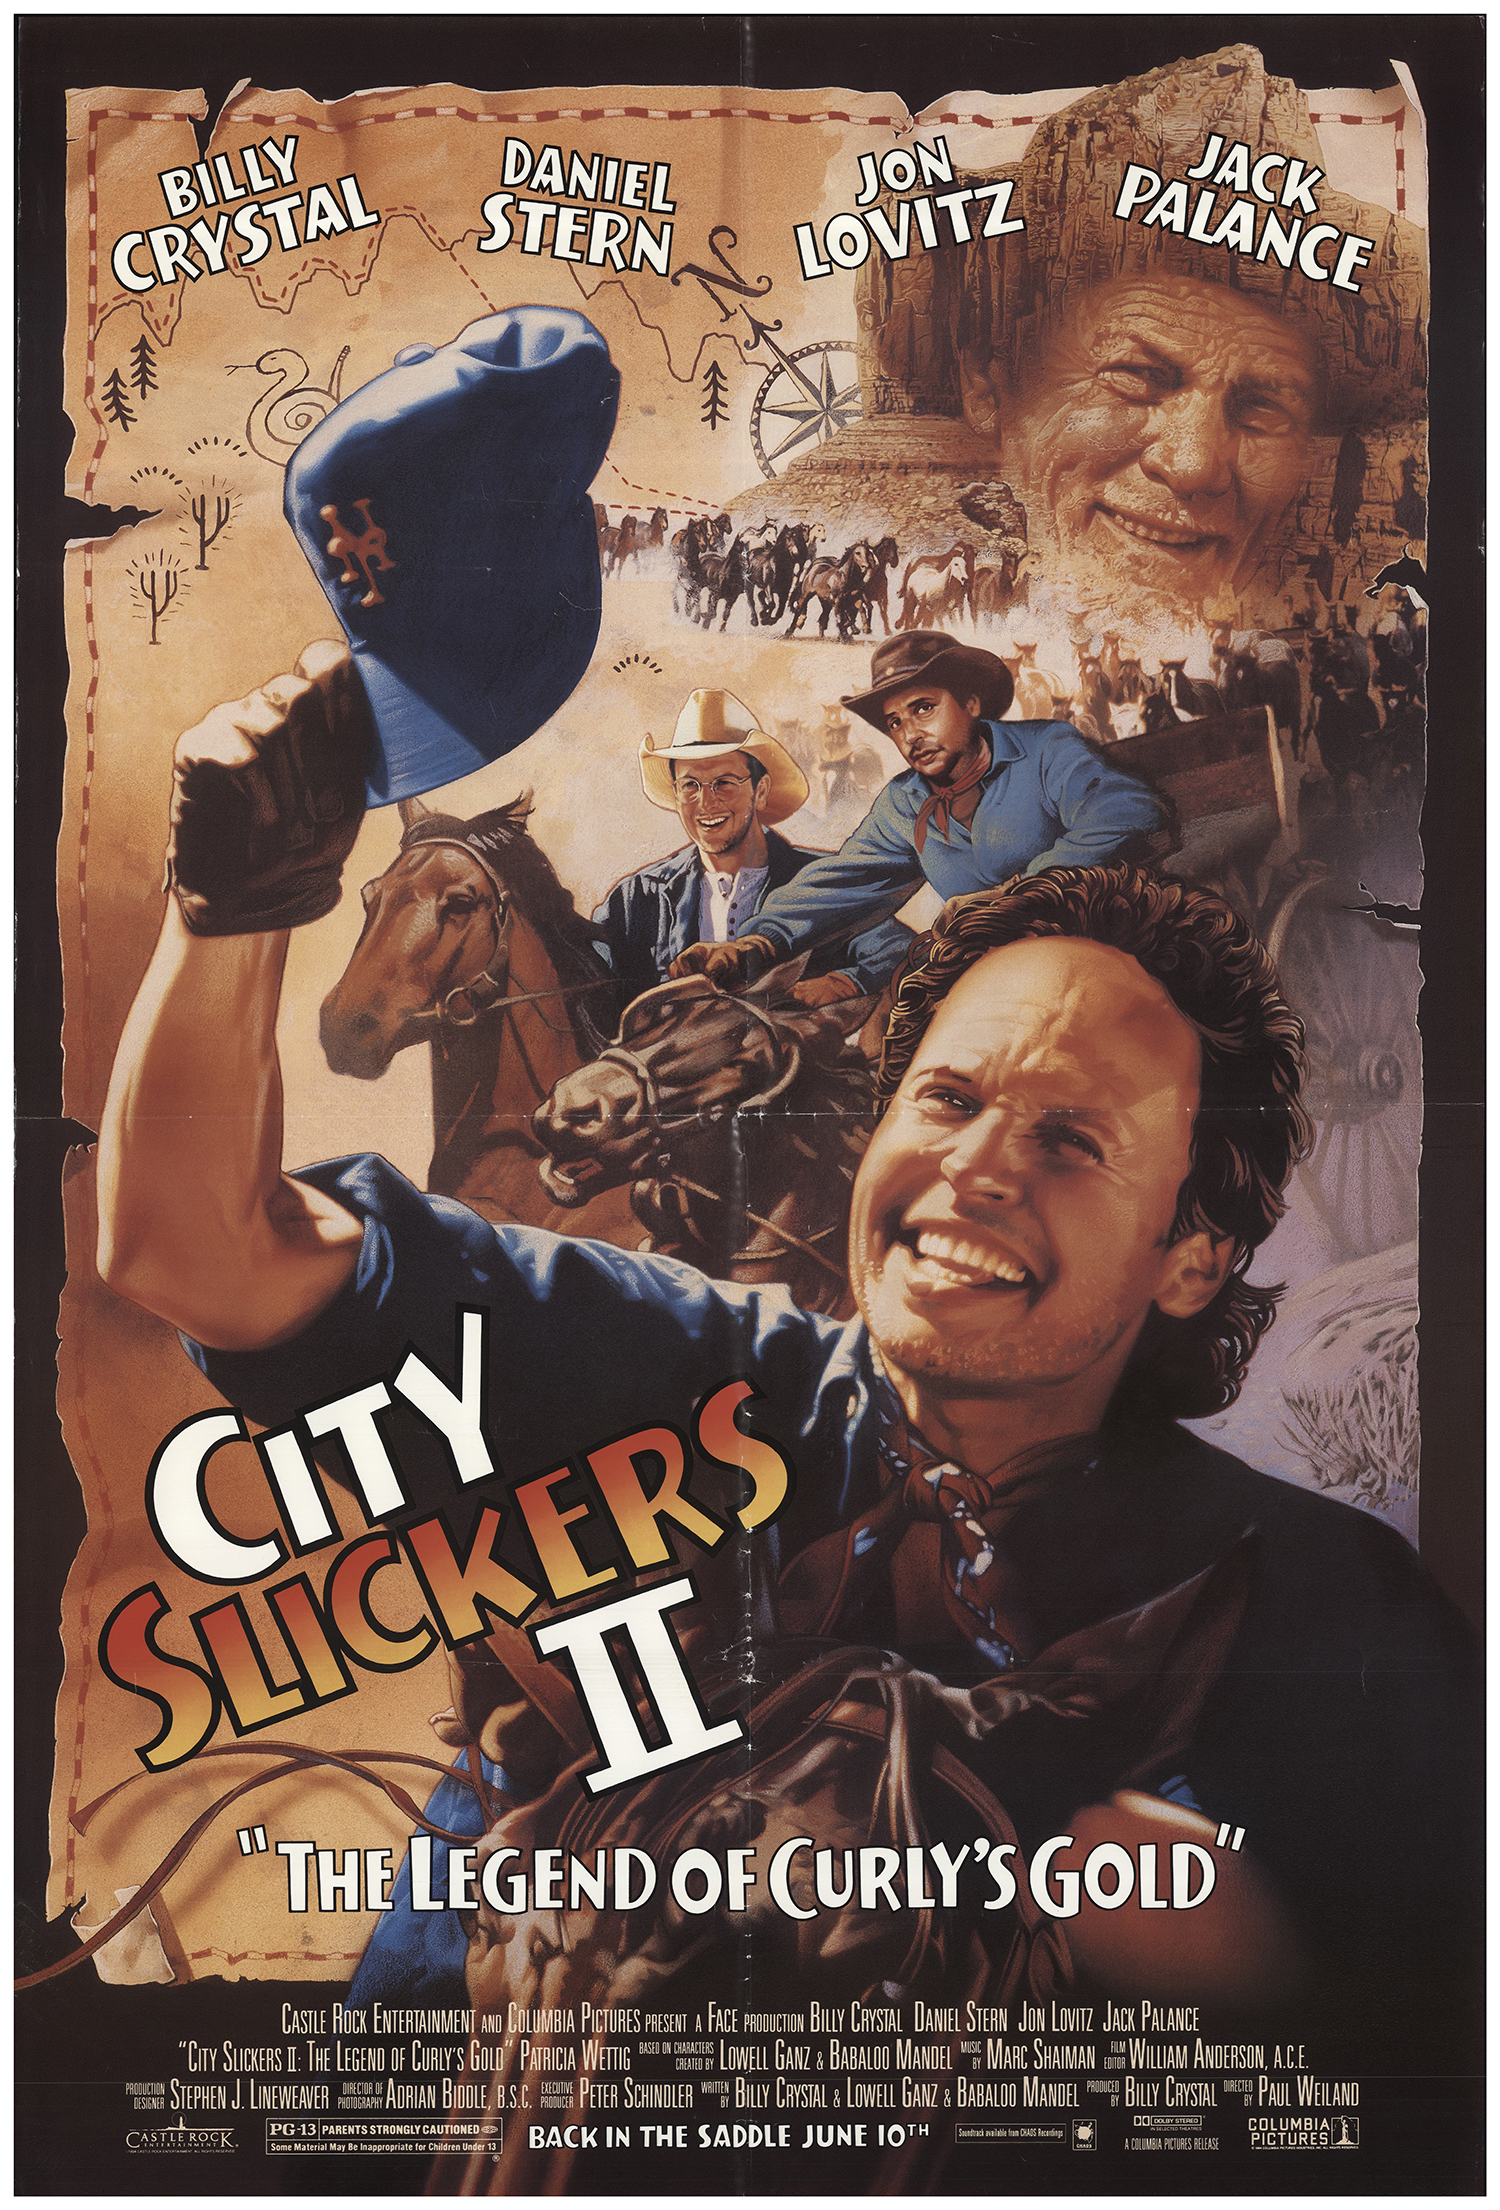 City Slickers II: The Legend of Curly's Gold 1994 Original Movie Poster  U S  One Sheet Advance FFF-69323